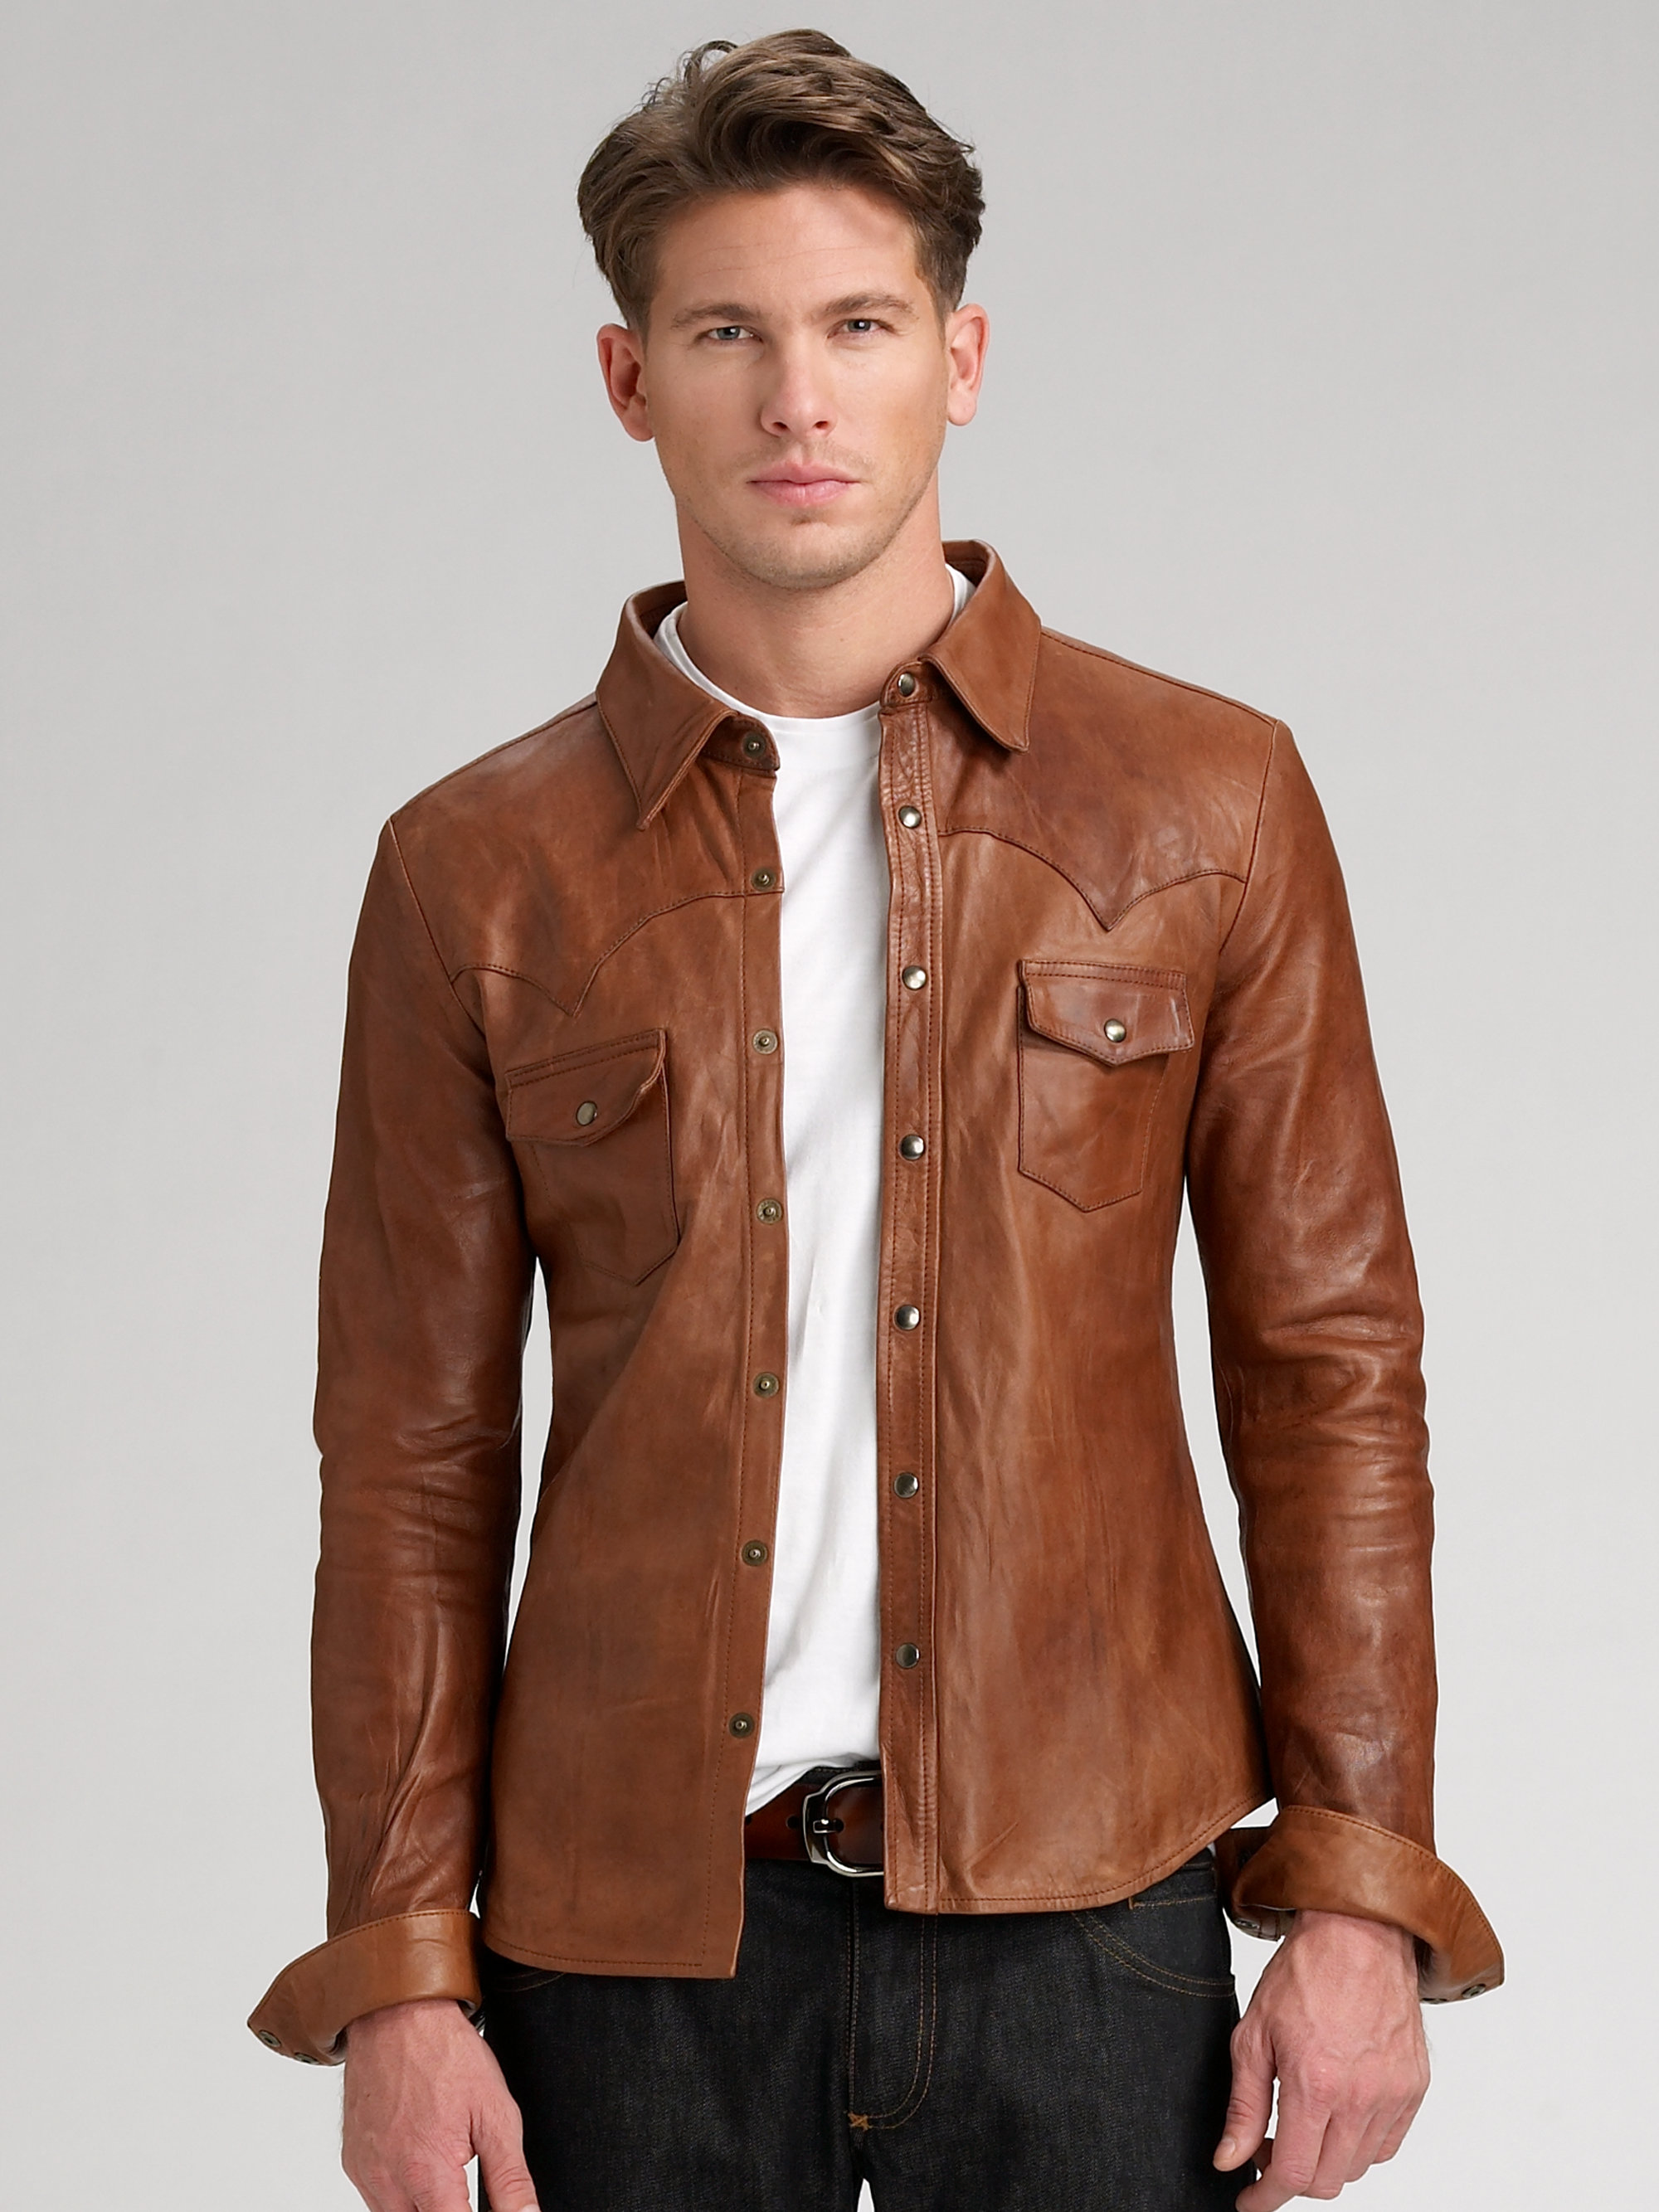 Dolce gabbana leather shirt in brown for men lyst for Mens dress shirts fashion